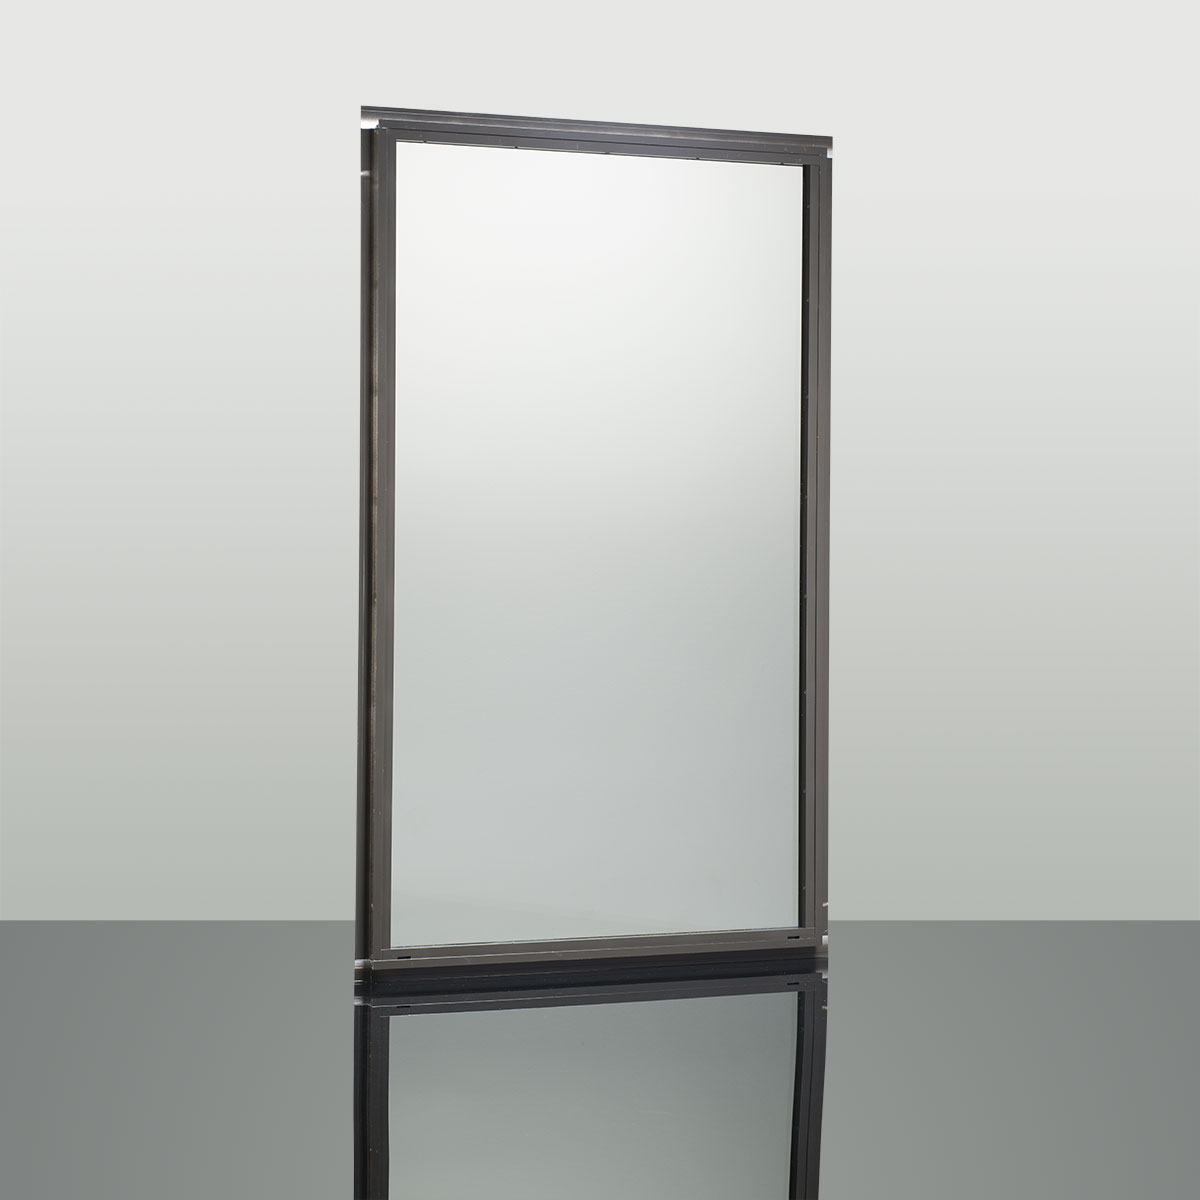 products and product information mi windows and doors 185 picture window